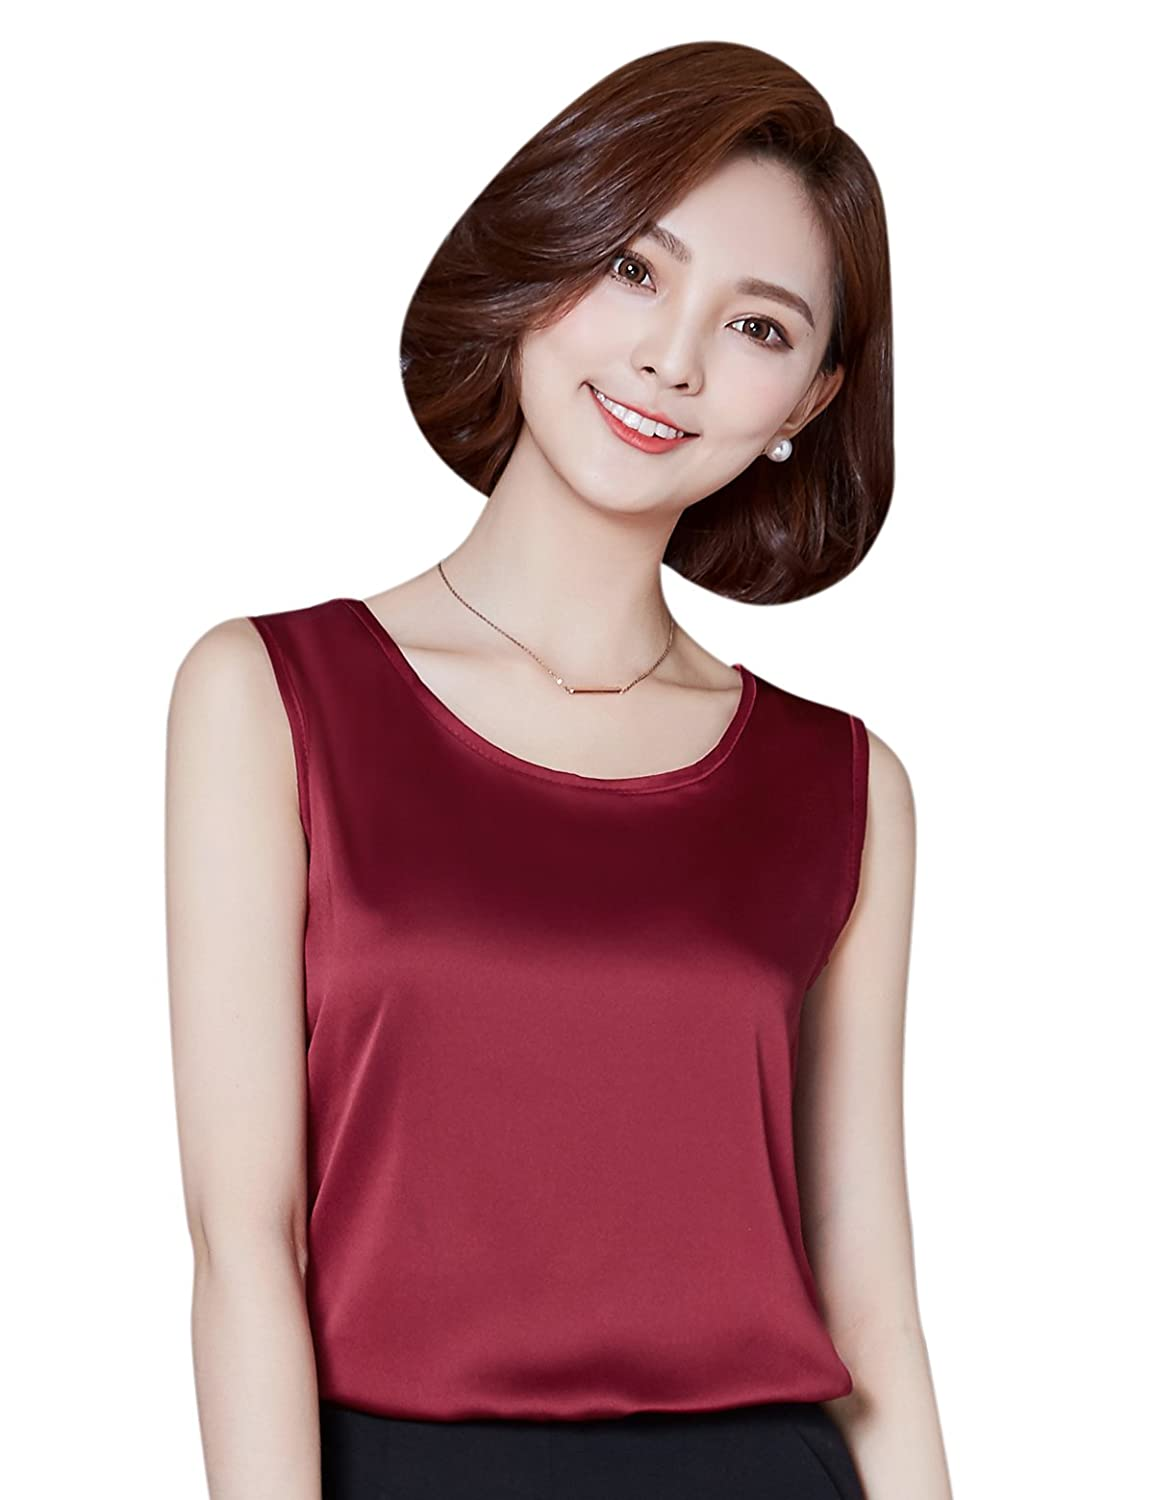 Alizeal Womens Camisole Silk-Feeling Charmeuse Vest Tops Multi-Color Available